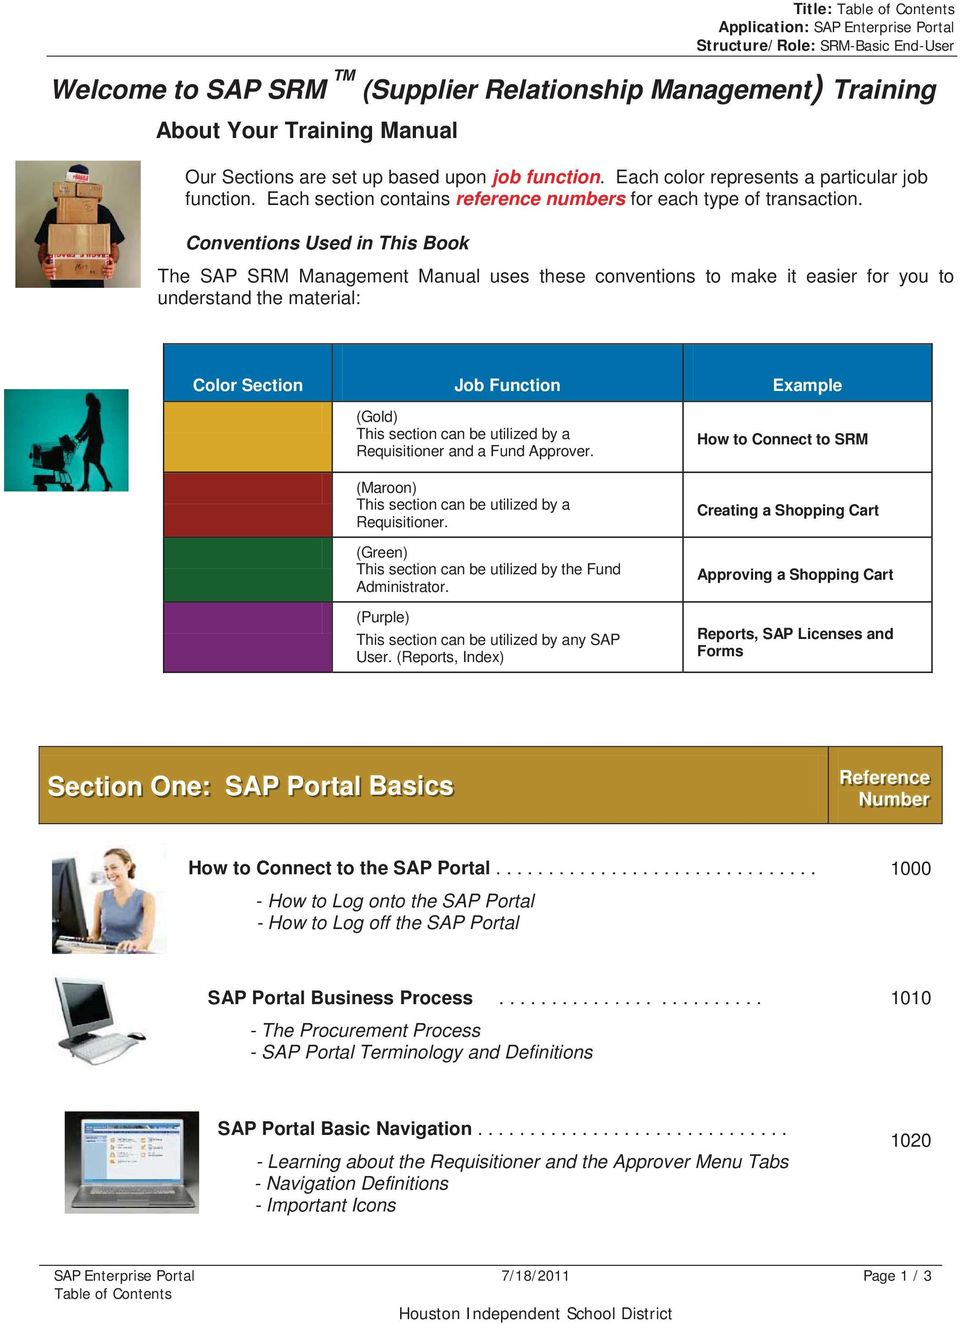 Conventions Used in This Book The SAP SRM Management Manual uses these  conventions to make it